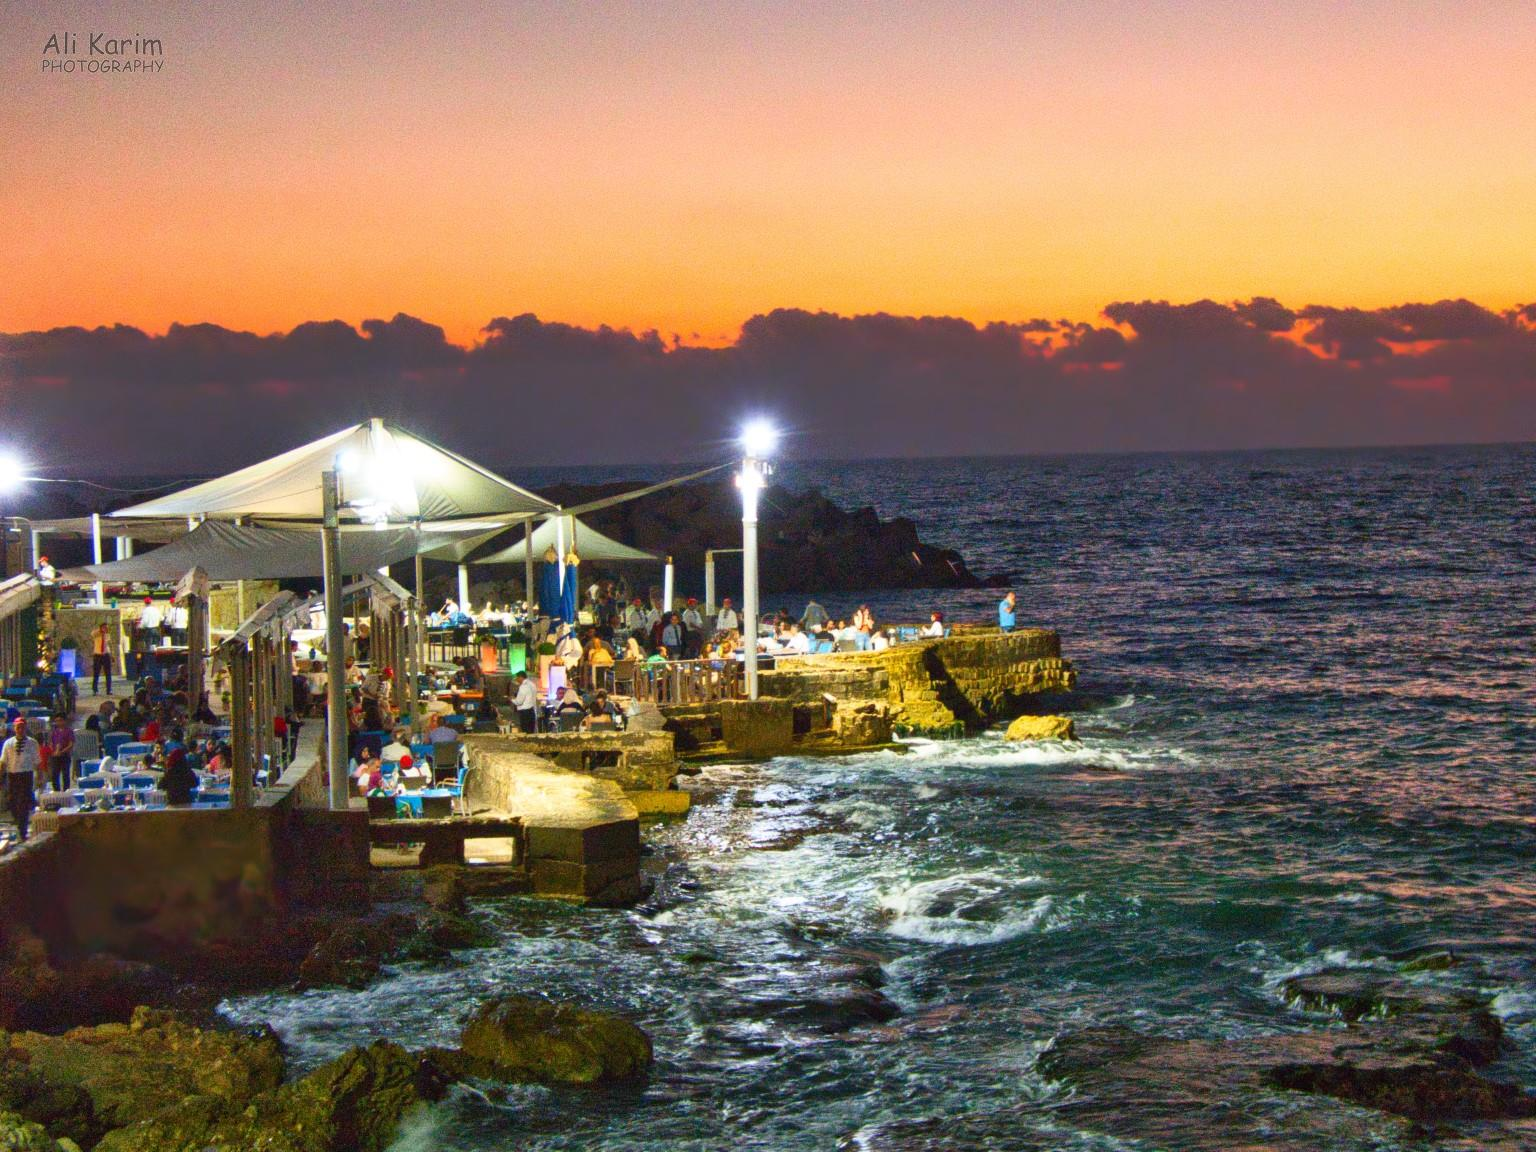 Beirut Seaside dining